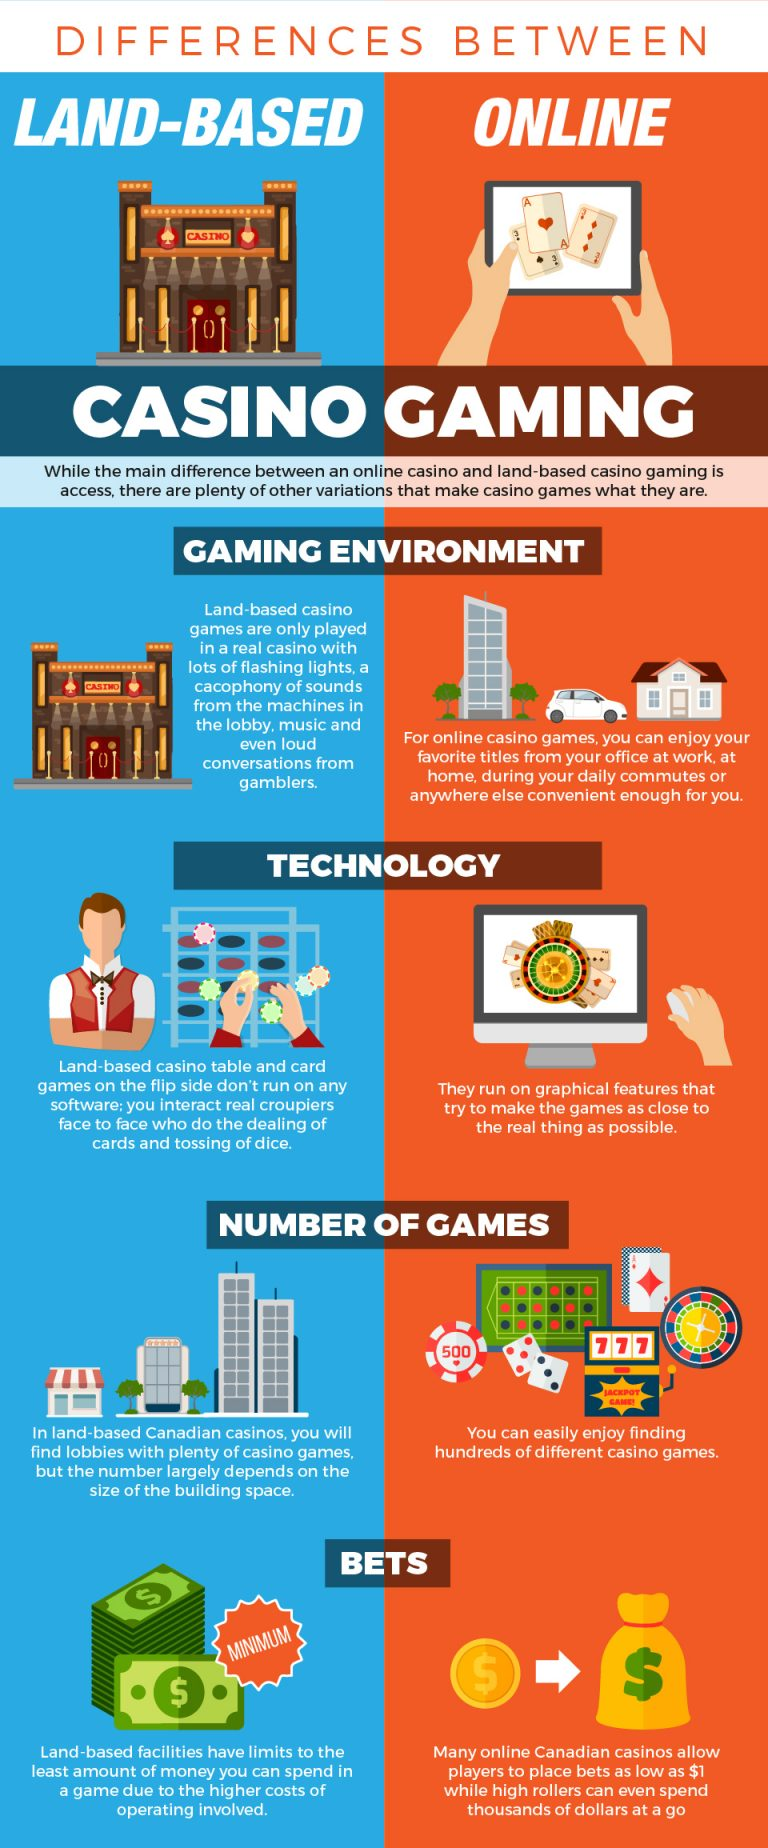 Differences Between Online and Land-Based Casino Gaming